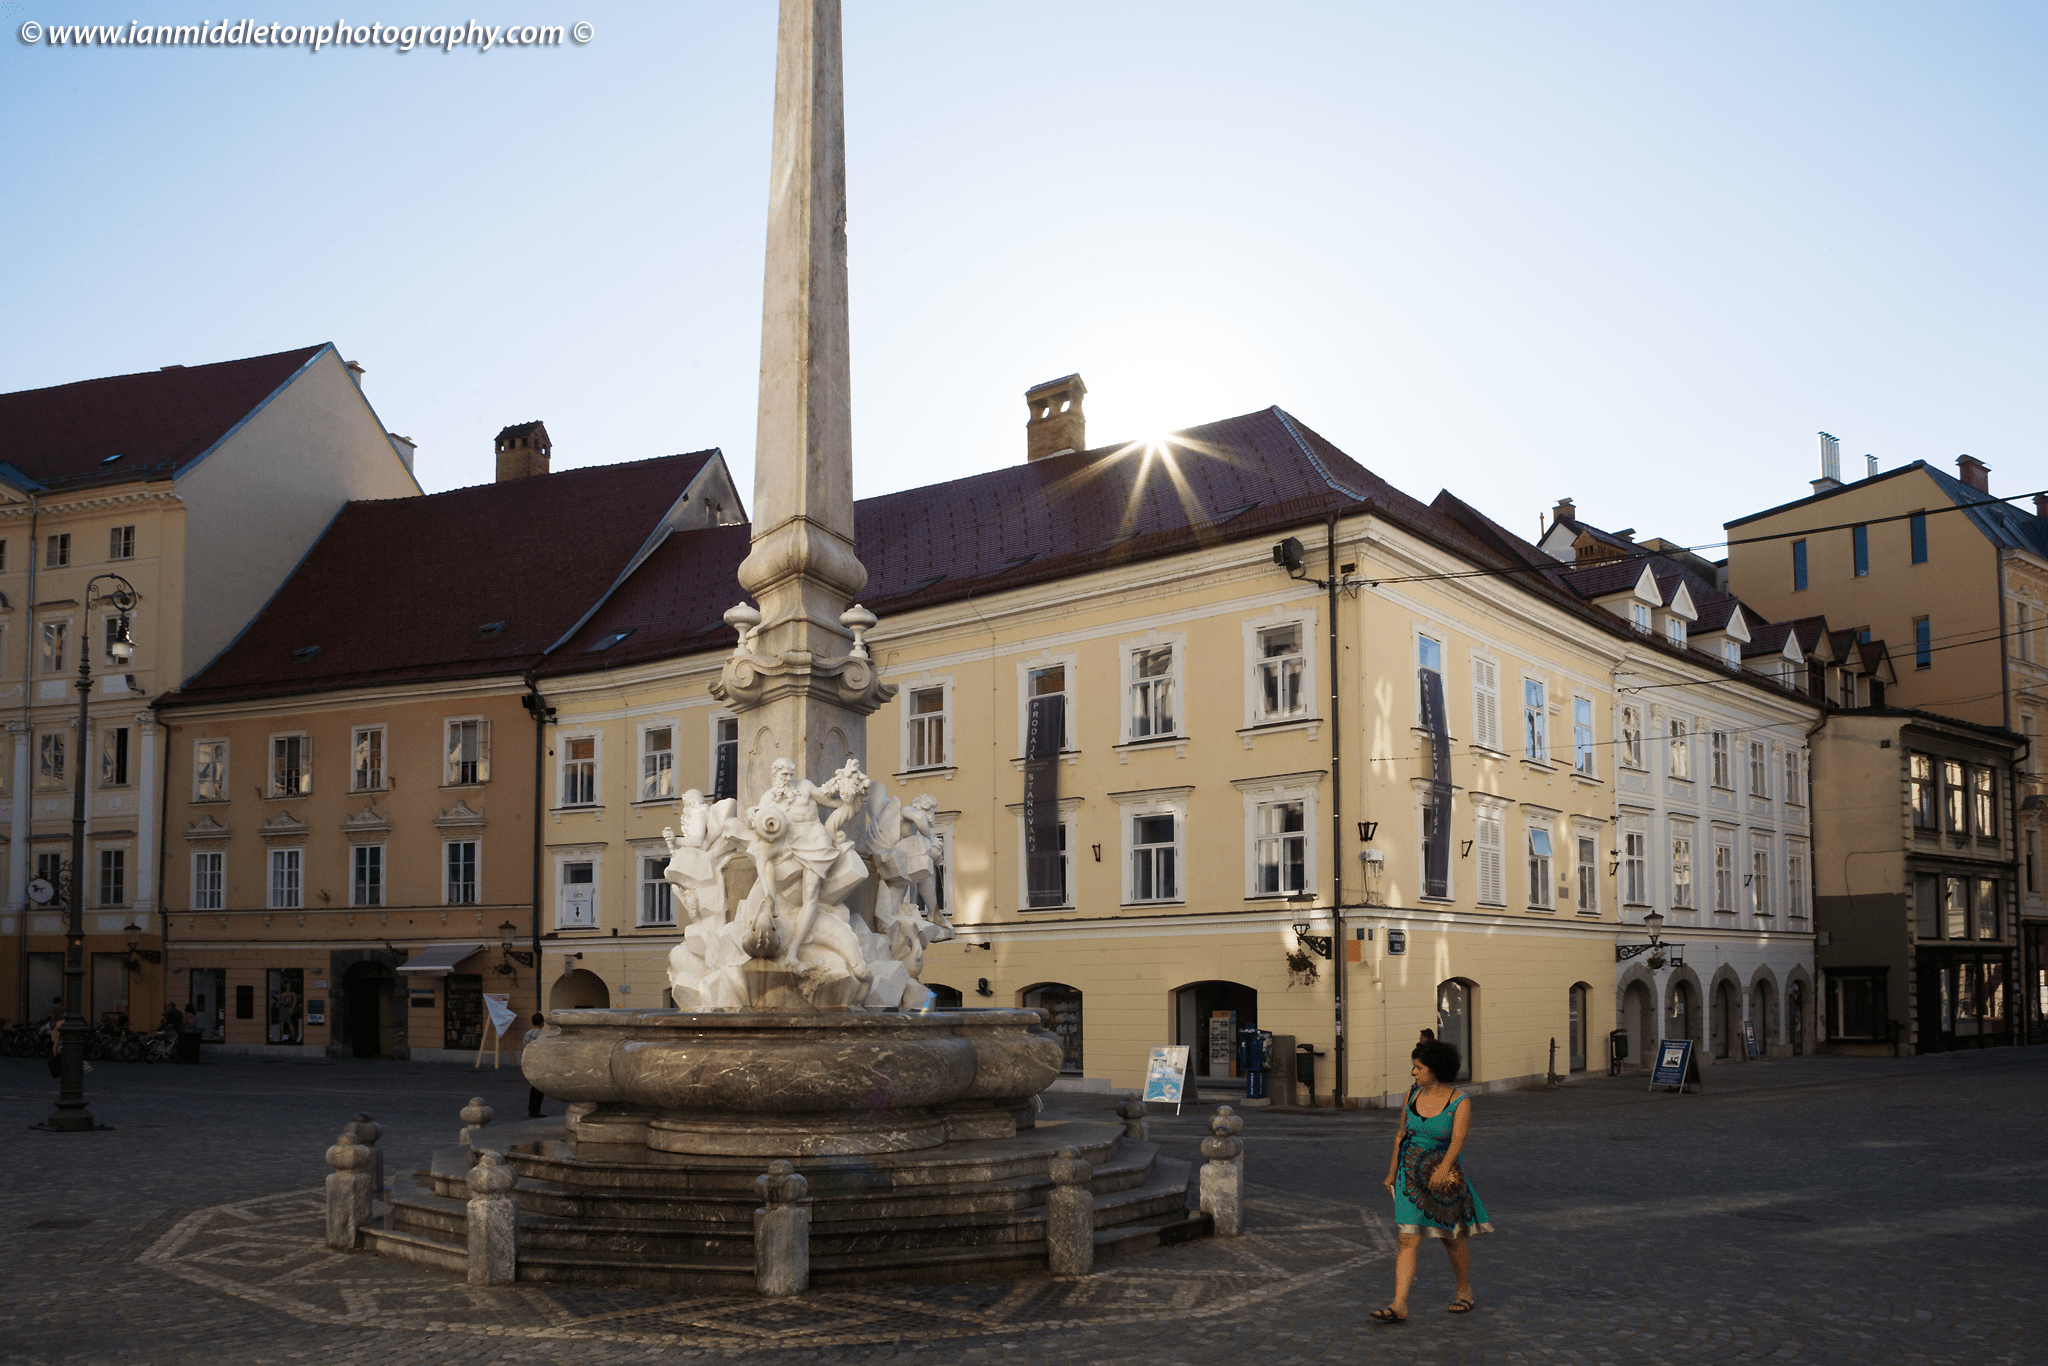 Backlit view of Robba Fountain and Mestni Trg, also known as the Fountain of Three Carniolan Rivers, with the sunburst from behind the tower. It sits in the old town square (Mestni Trg) in front of the town hall. Built in 1751, this famous fountain is named after its creator, the Italian Baroque sculptor Francesco Robba (1698-1757). The pool is in the shape of a three leaf clover and from it rises a three sided obilisk. The fountain is adorned with the statues of the three river Gods: Krka, Ljubljanica and Sava, also the names of three of Slovenia's main rivers. The original has been removed and placed in a museum for protection, due to its fragile nature, and has been replaced with a replica.